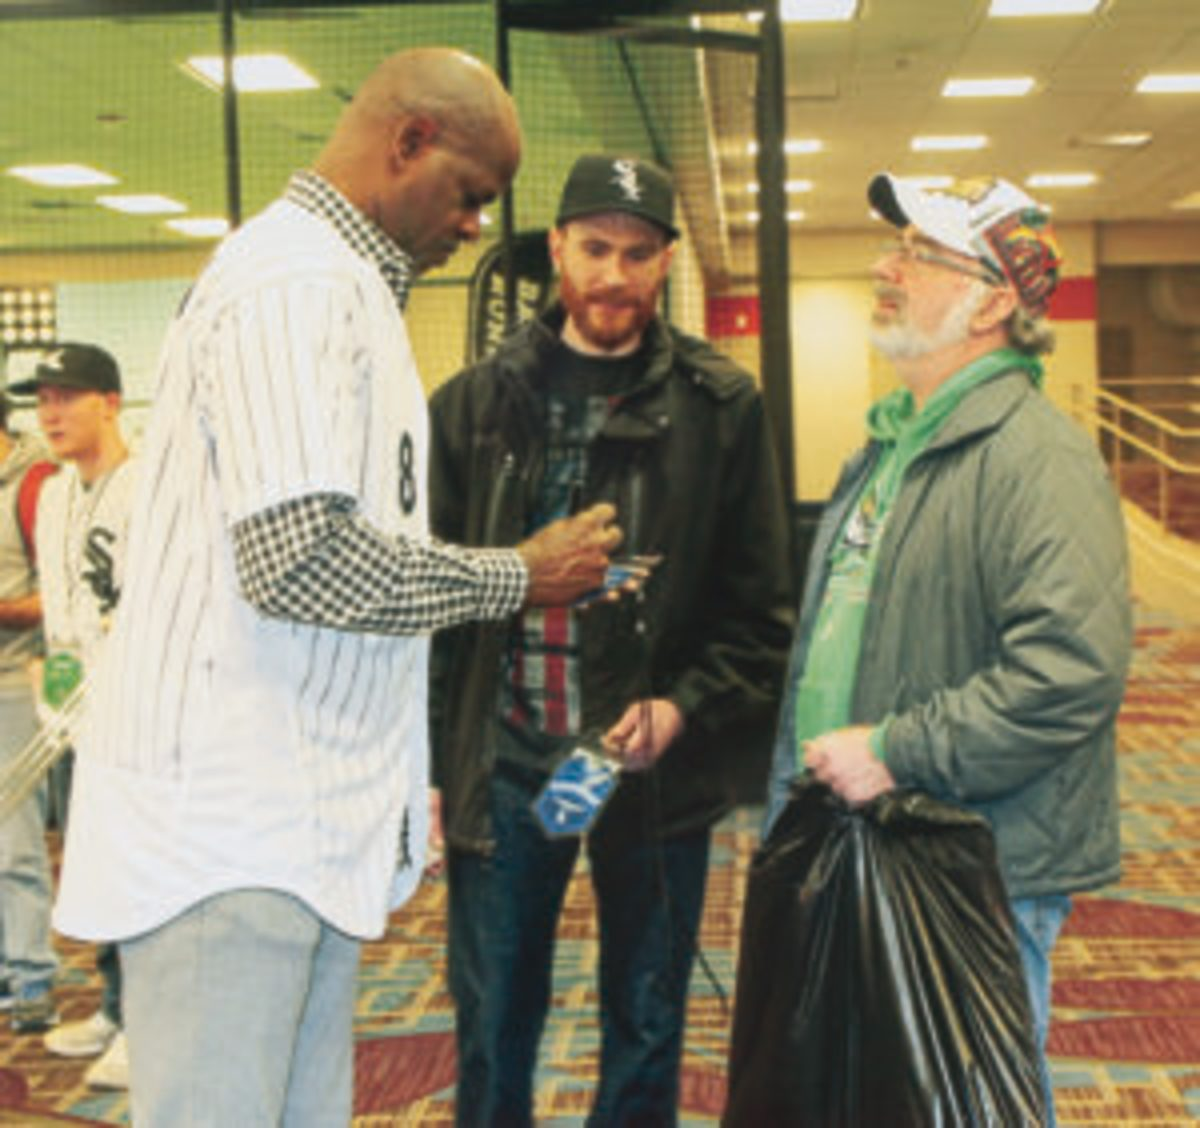 Former Chicago White Sox player and current White Sox coach Daryl Boston signs autographs for fans at Soxfest.